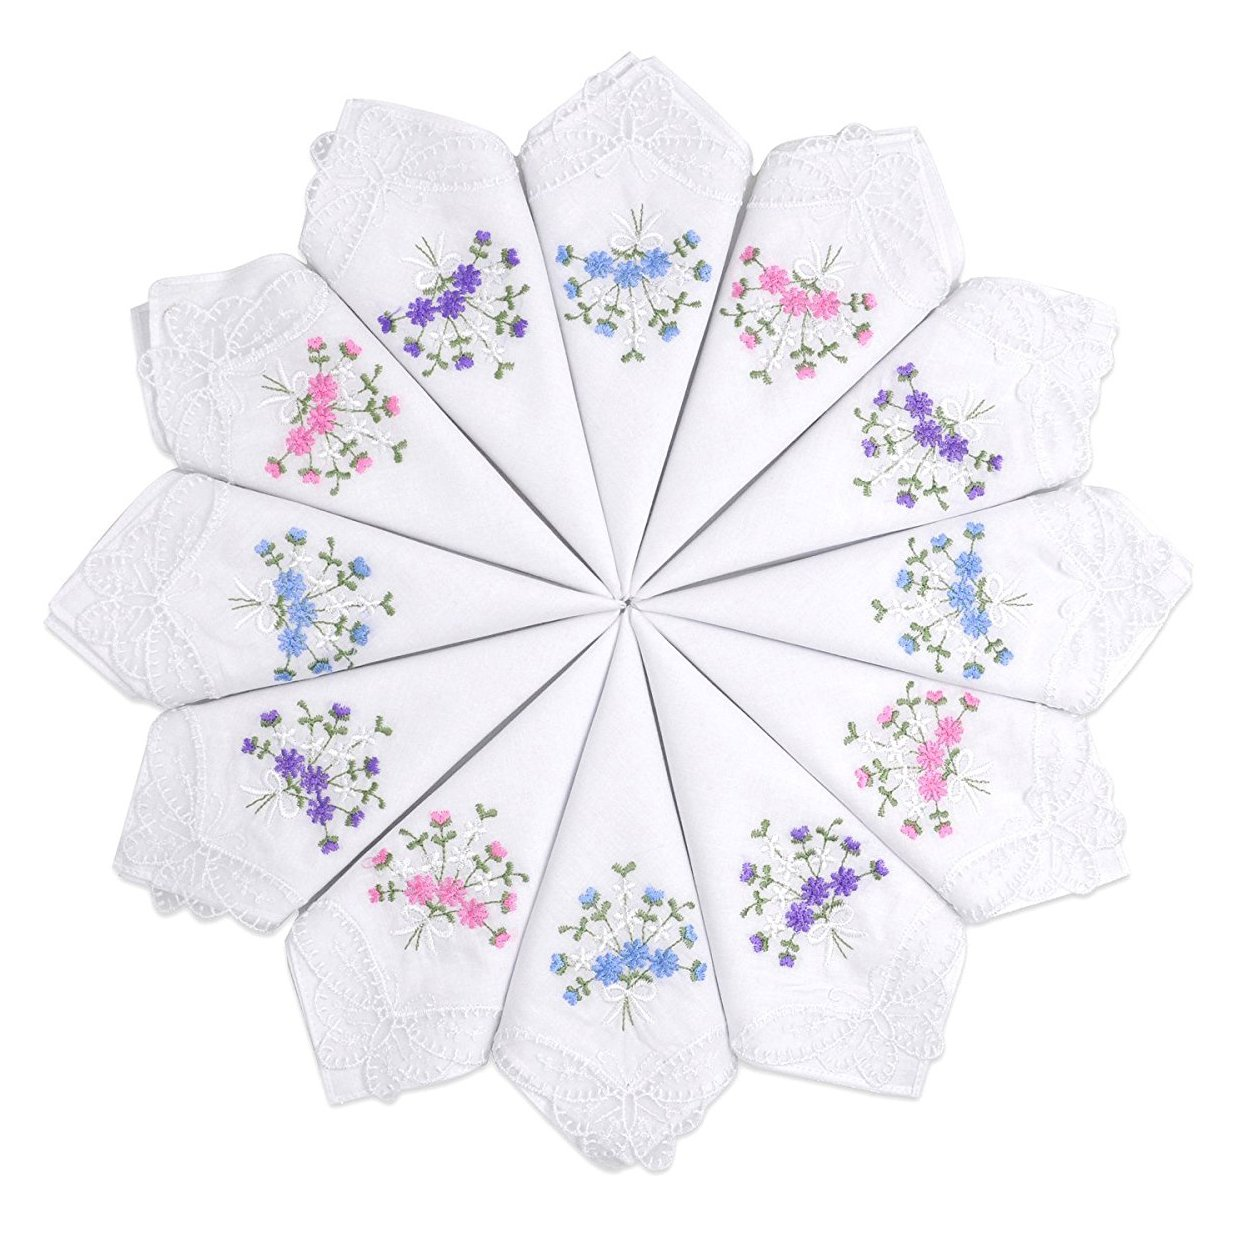 Selected Hanky Ladies/Women's Cotton Handkerchief Flower Embroidered with Lace 12 Pack - Assorted